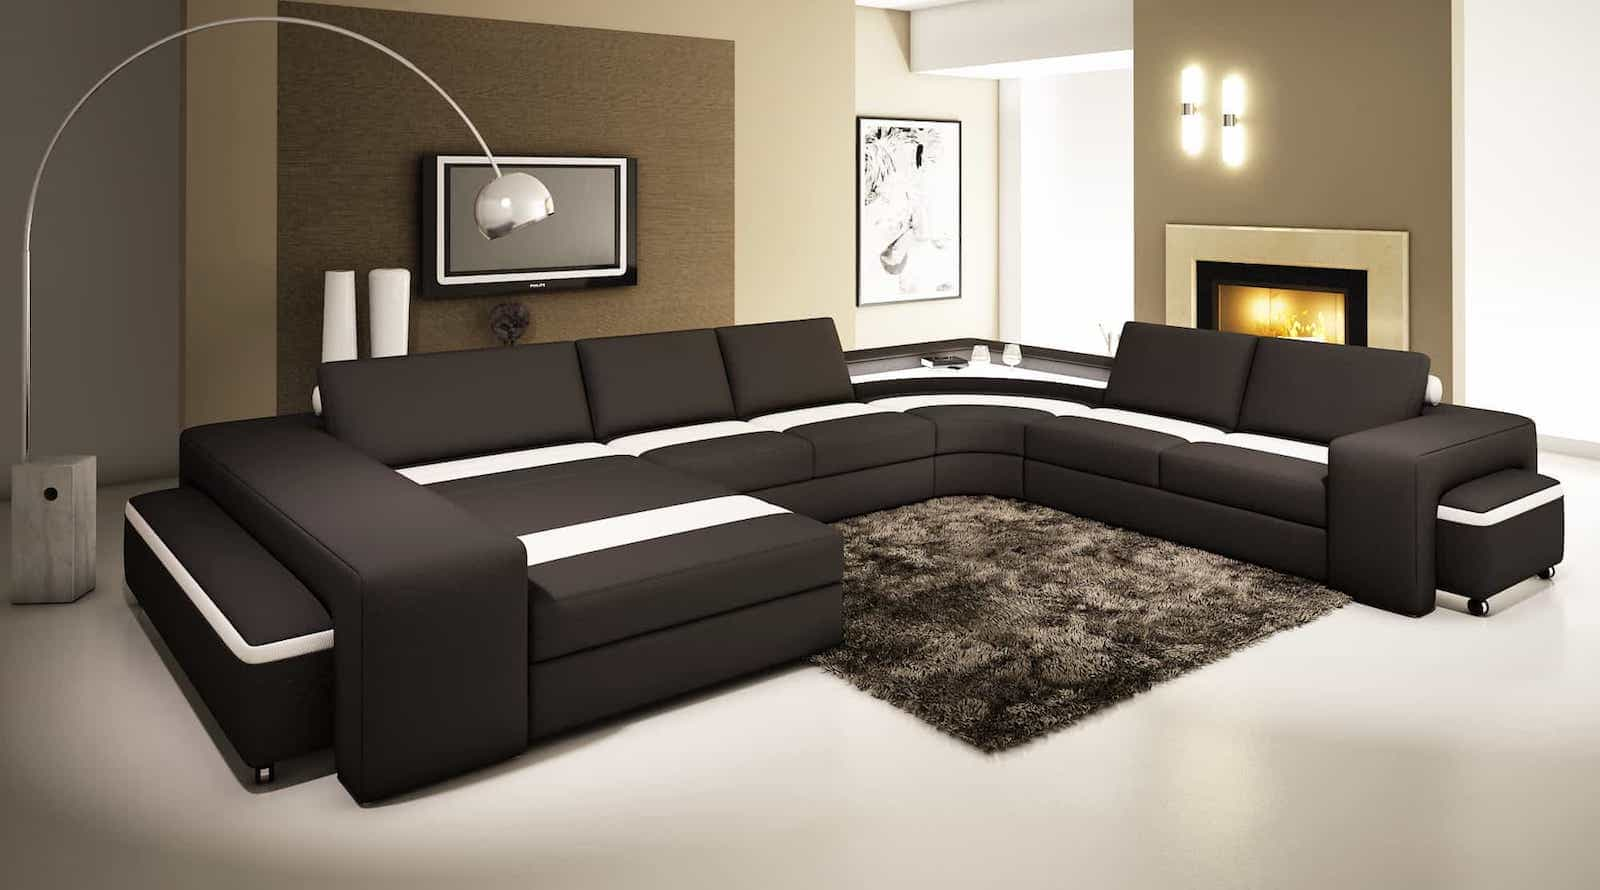 Modern Living Room Design With Elegant Black U Shaped Couch And Flokati Rugs (View 6 of 10)